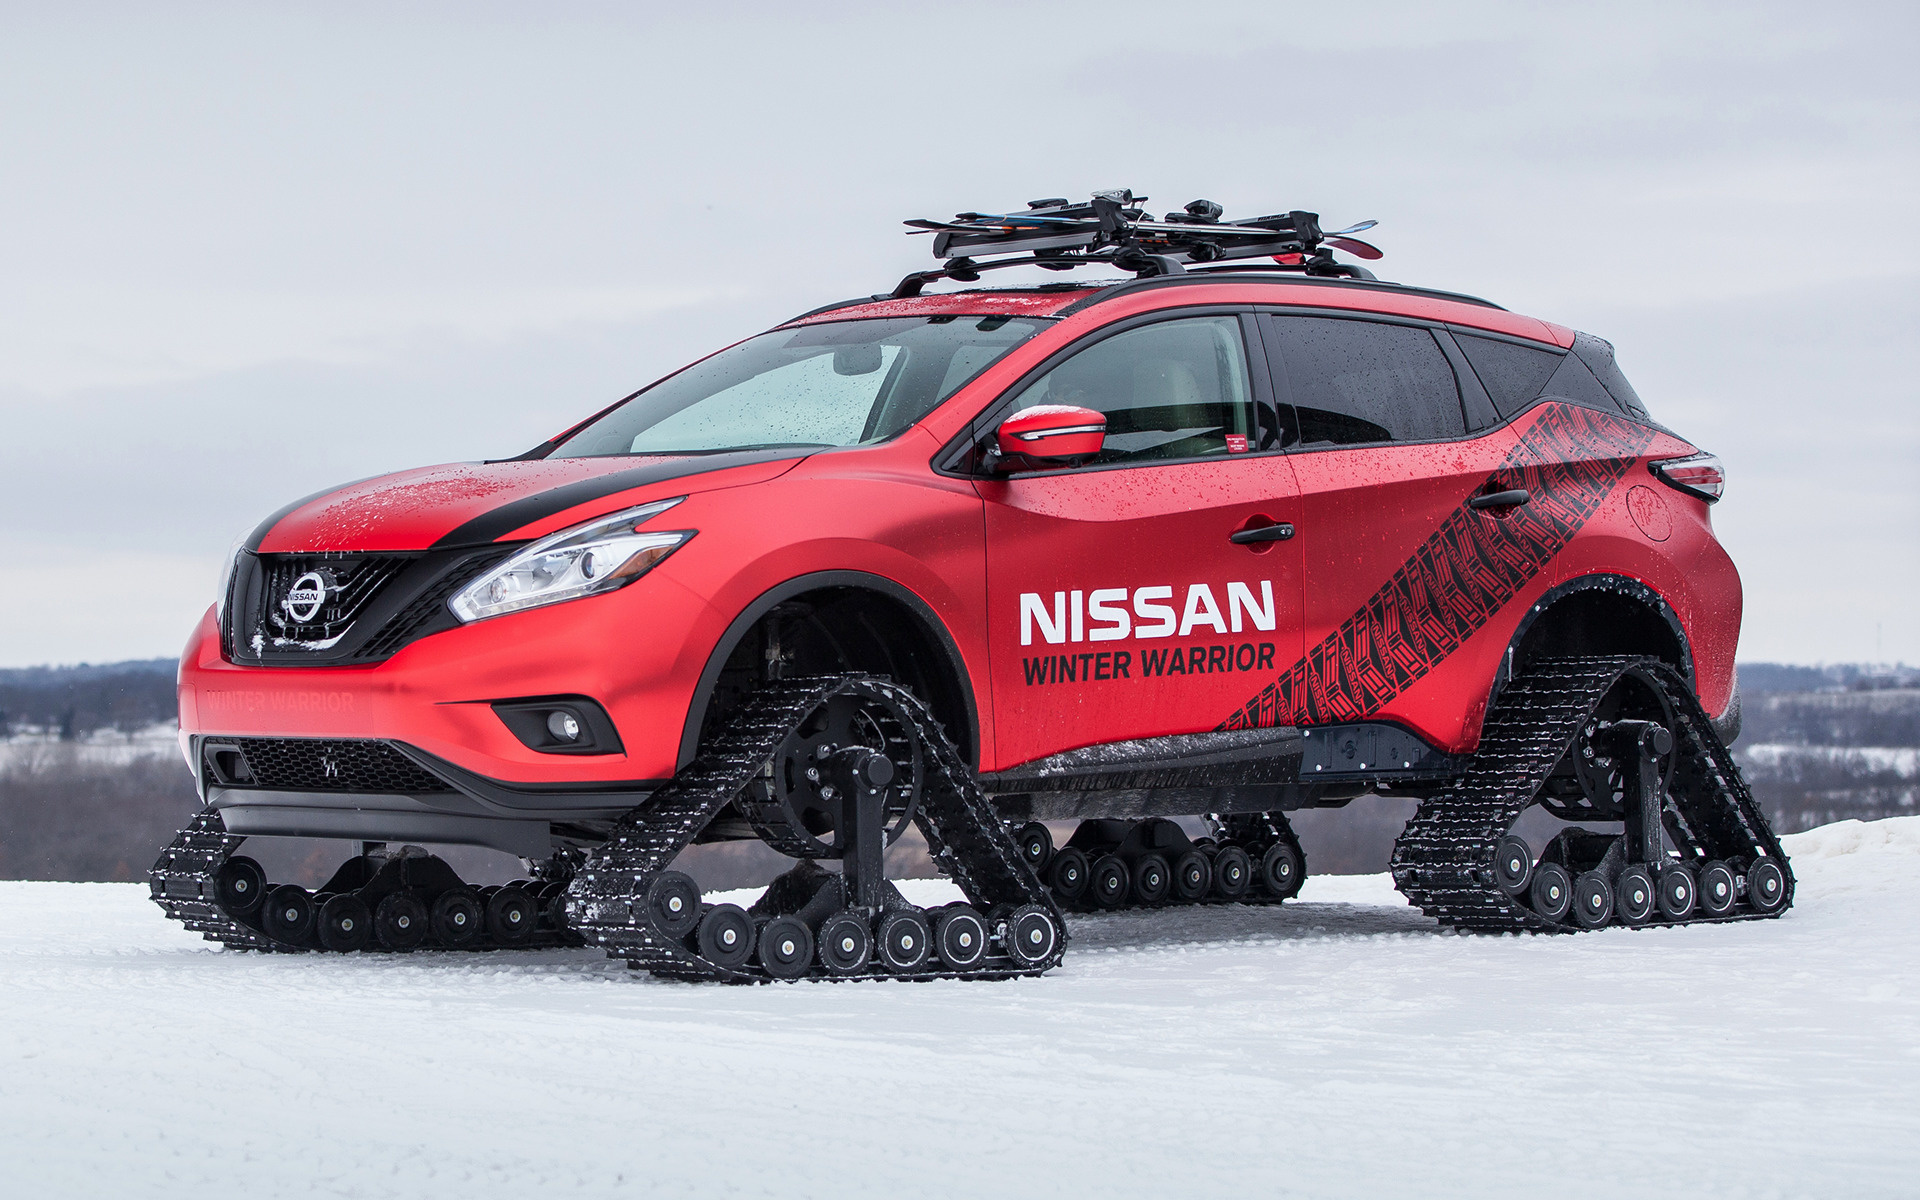 2016 Nissan Murano Winter Warrior Concept   Wallpapers and HD 1920x1200